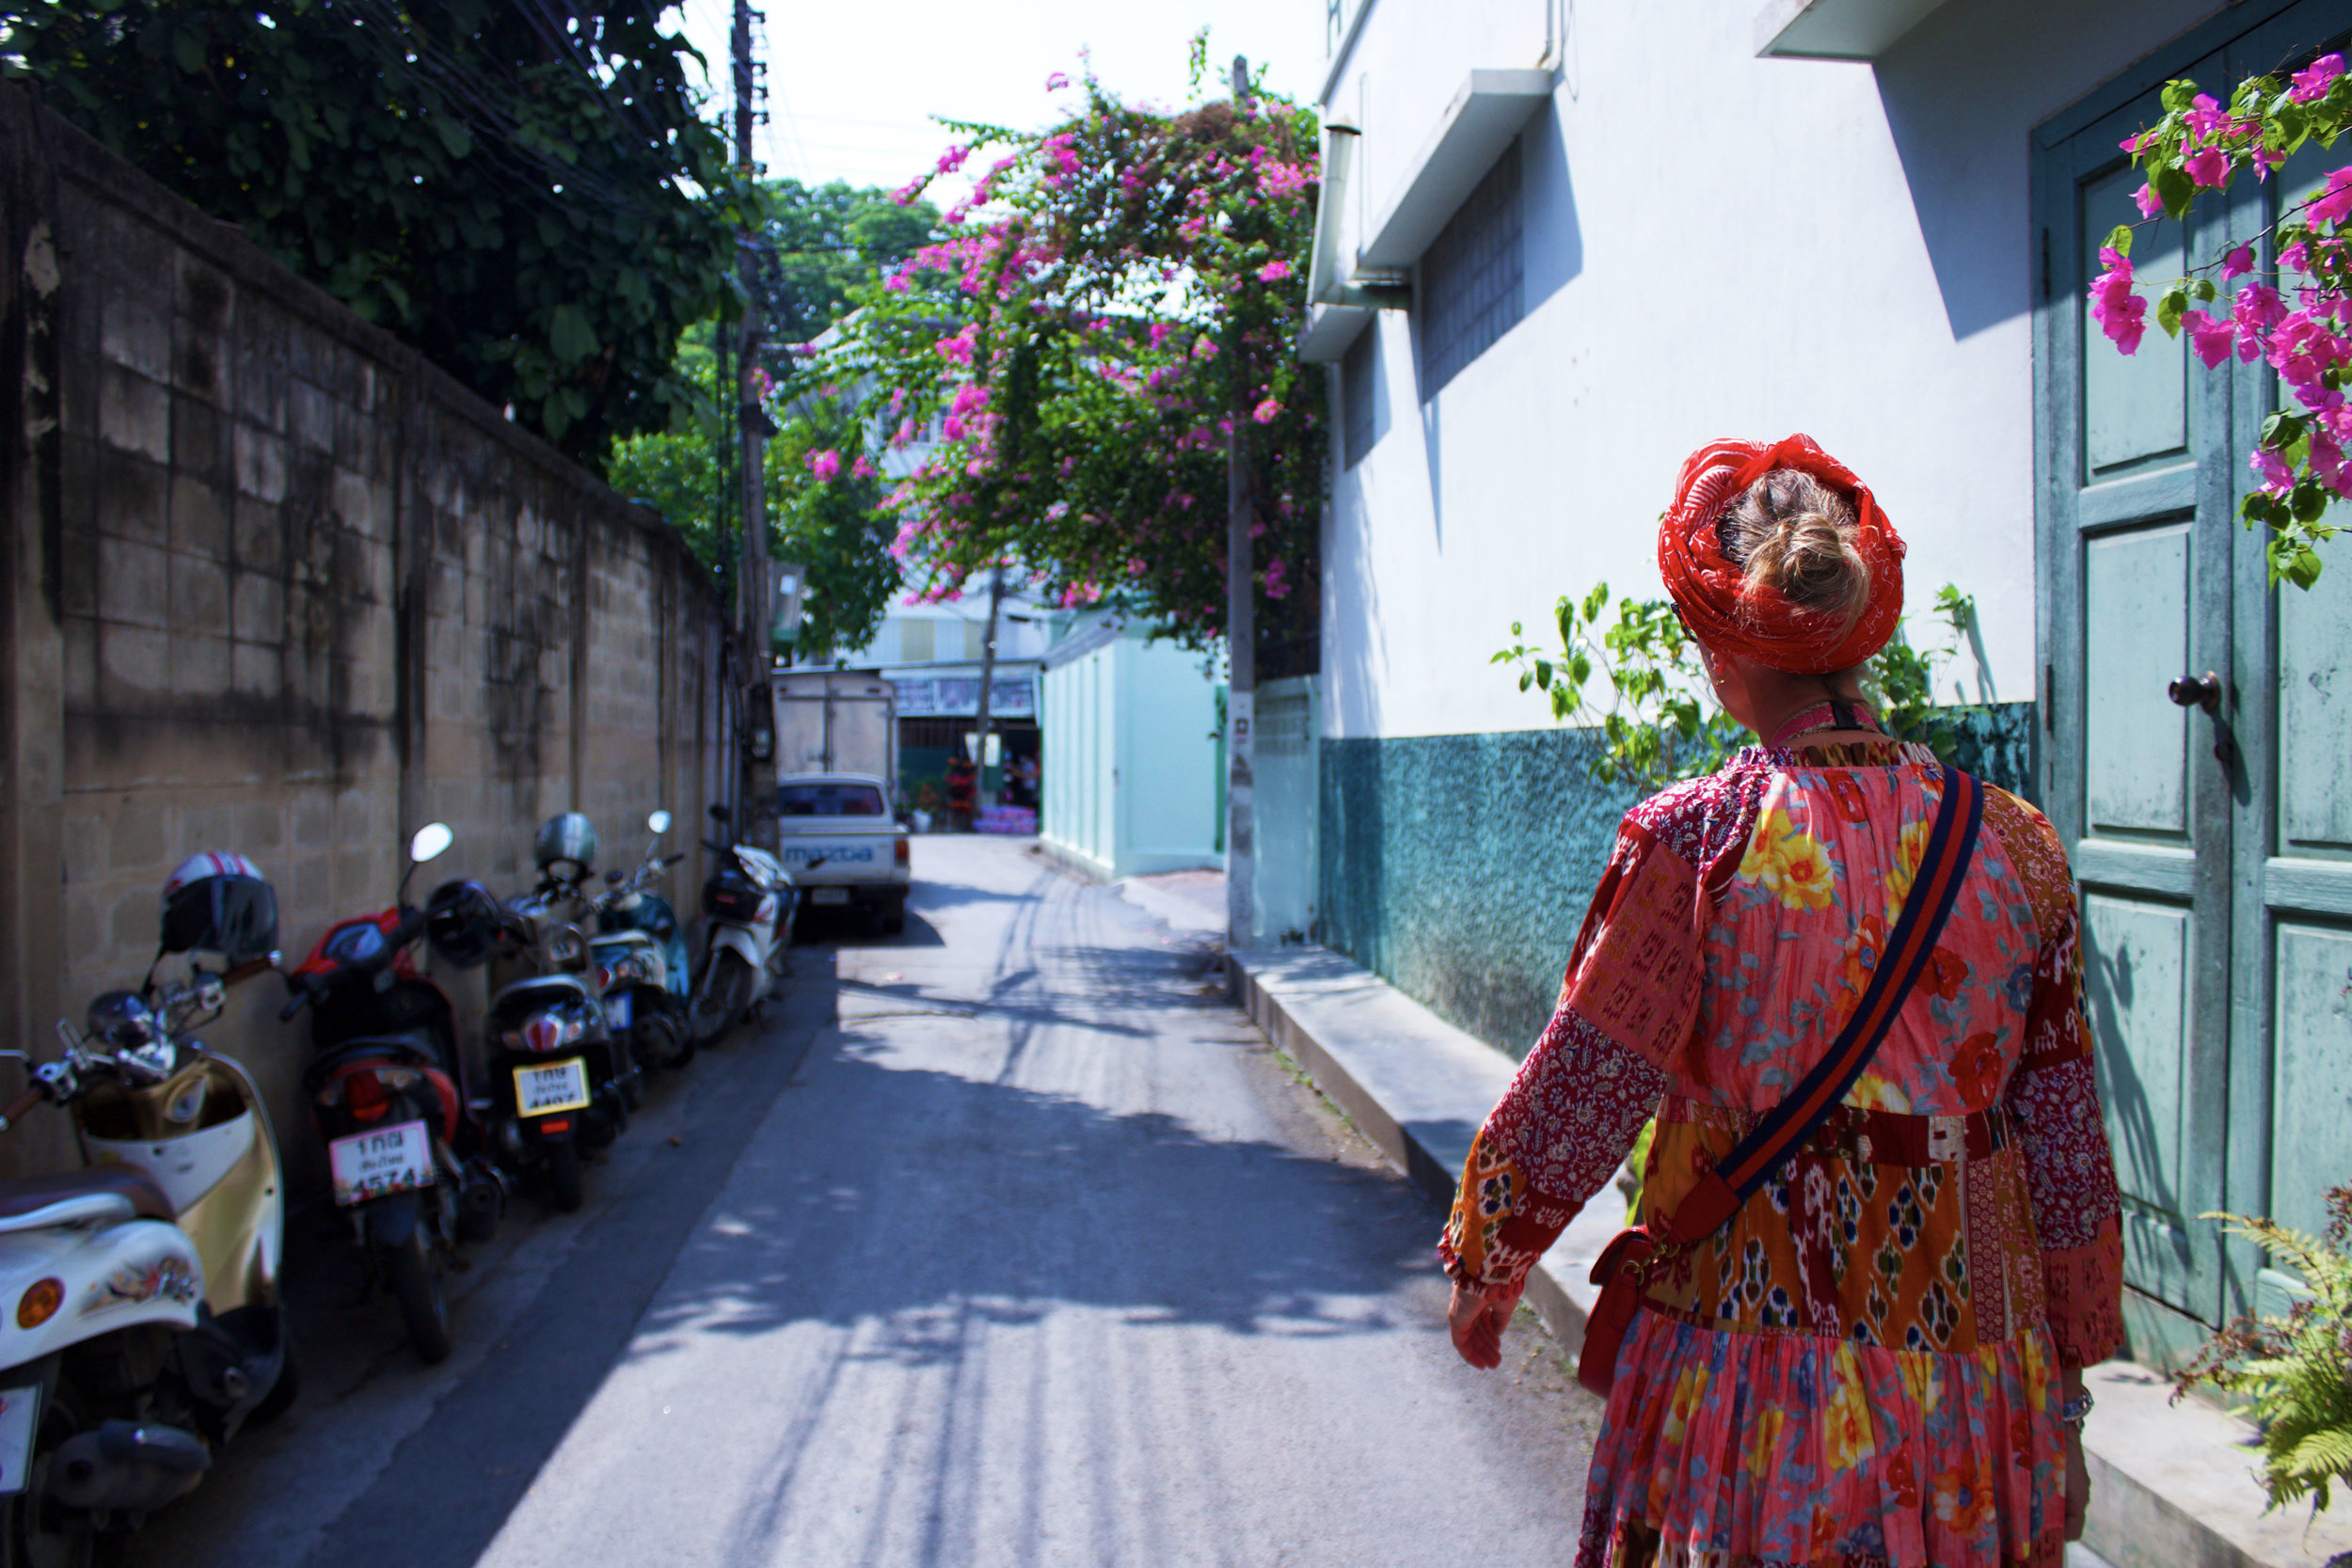 Getting lost in the streets of Chiang Mai